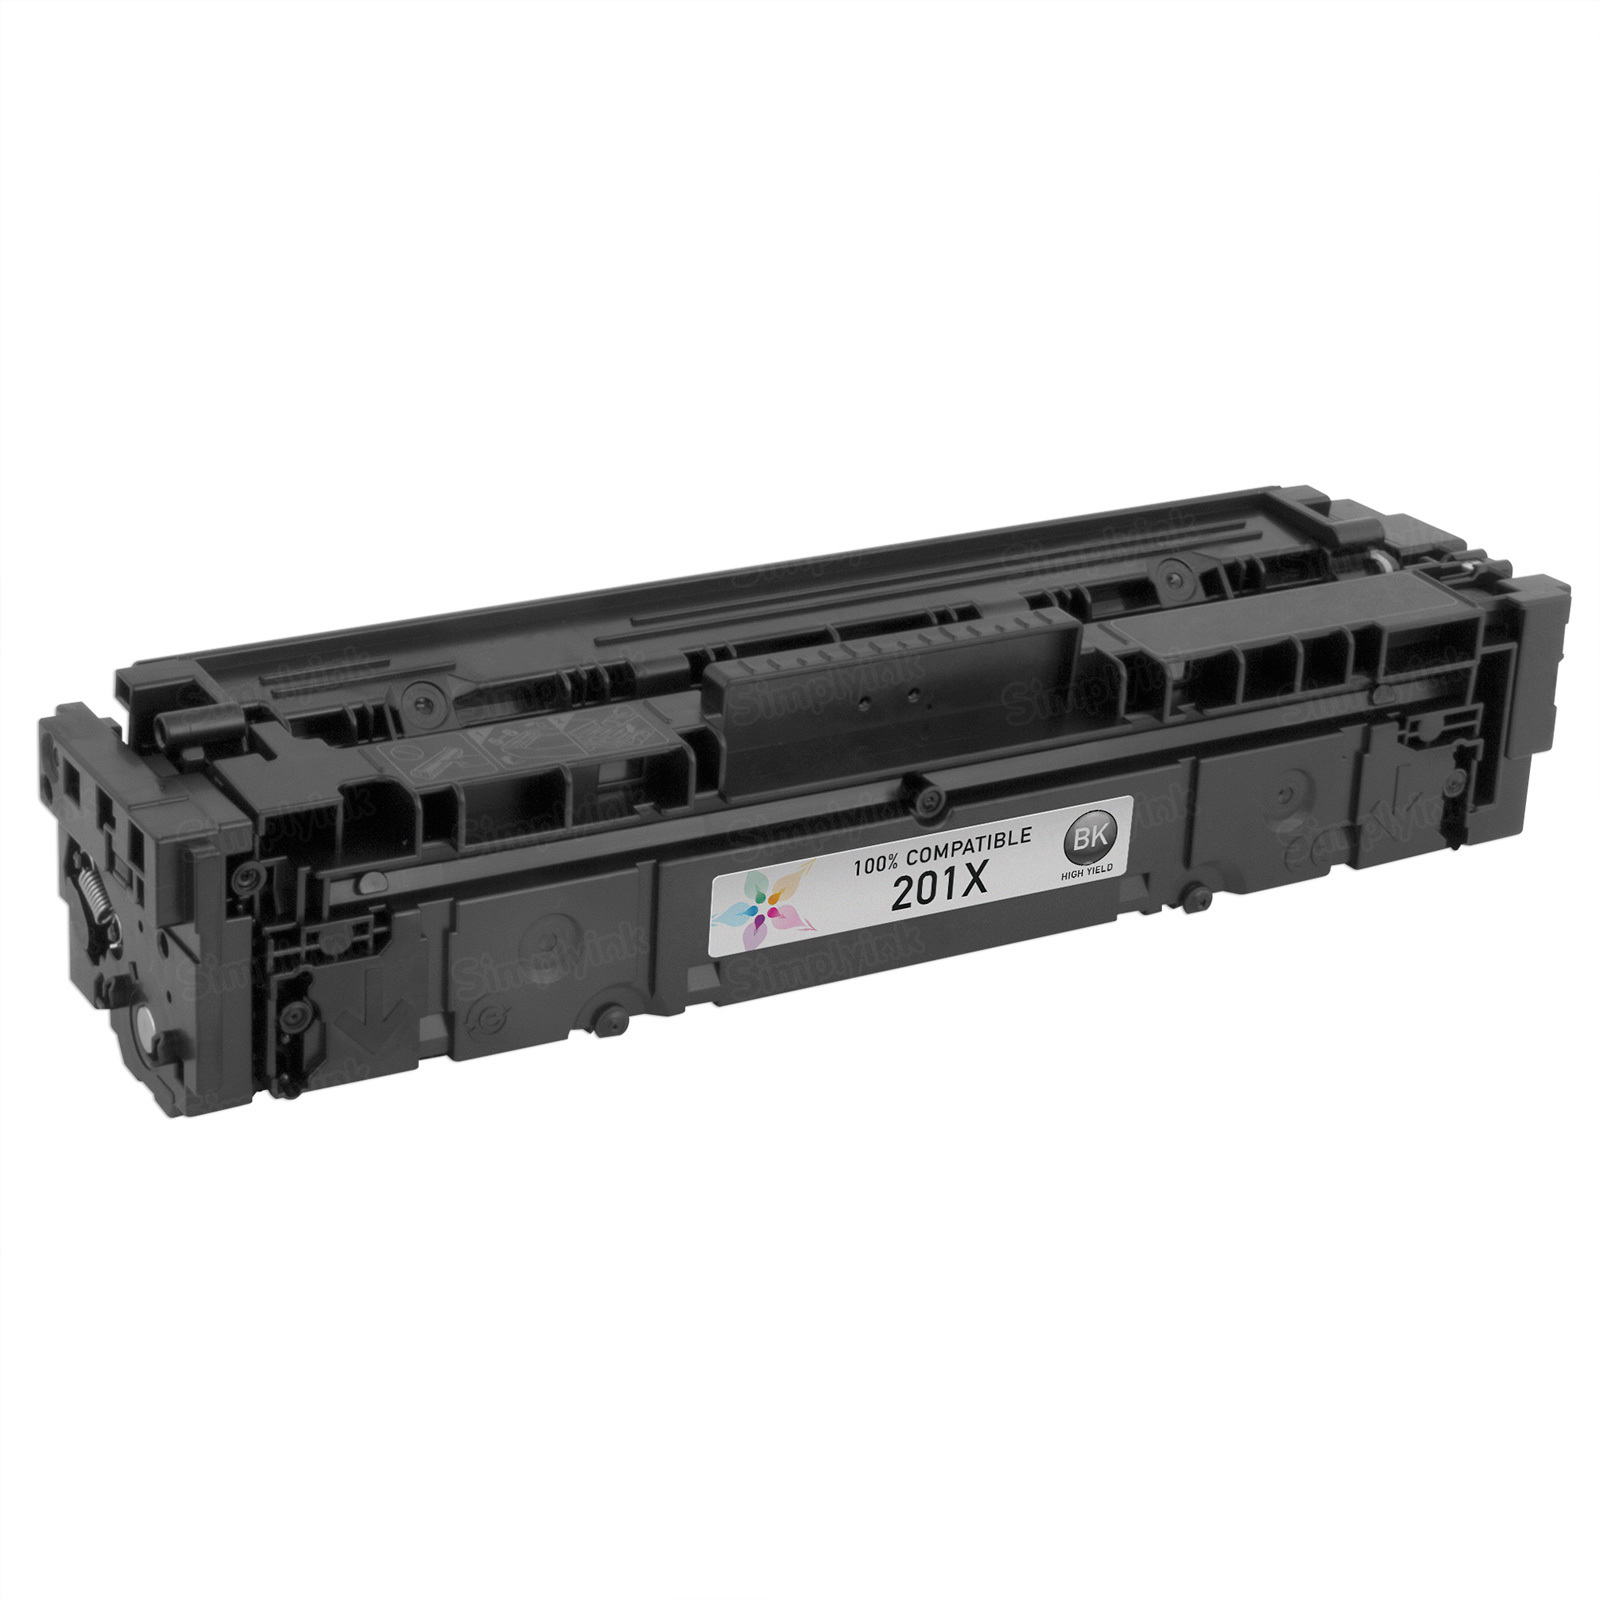 Compatible Brand HY Black Laser Toner for HP 201X